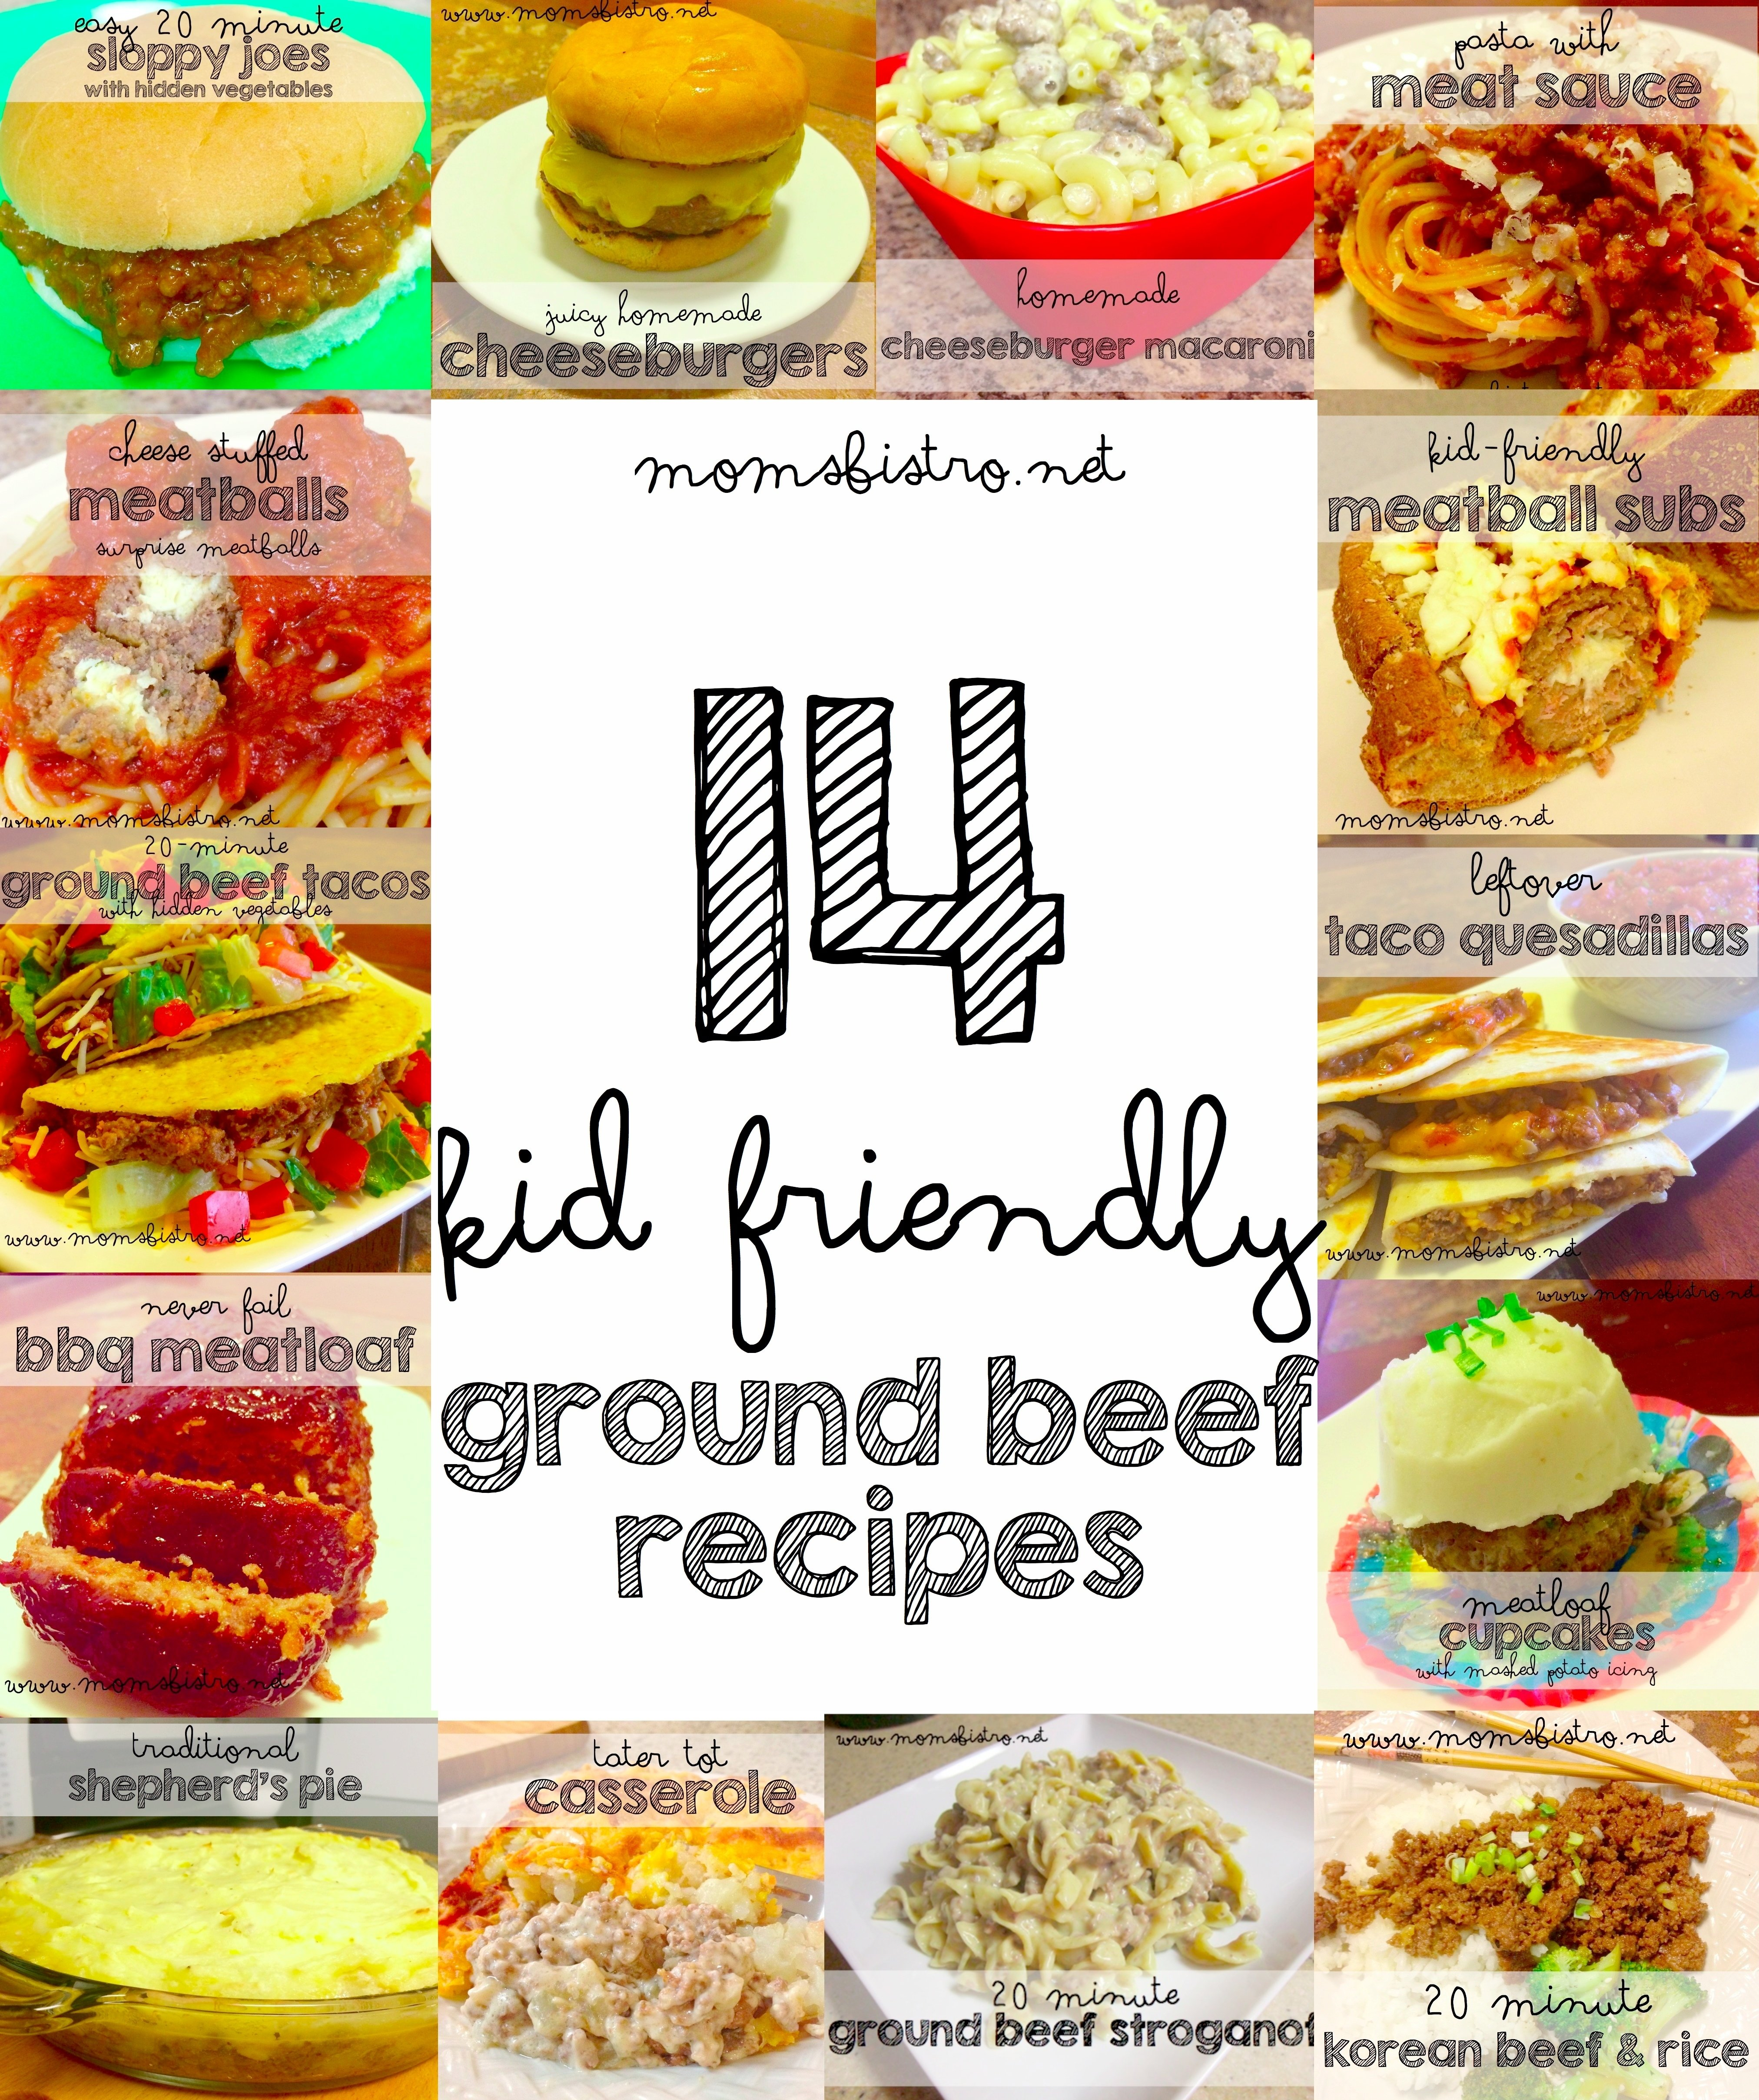 10 Great Quick Kid Friendly Dinner Ideas 14 easy kid friendly ground beef recipes to try for dinner tonight 15 2021